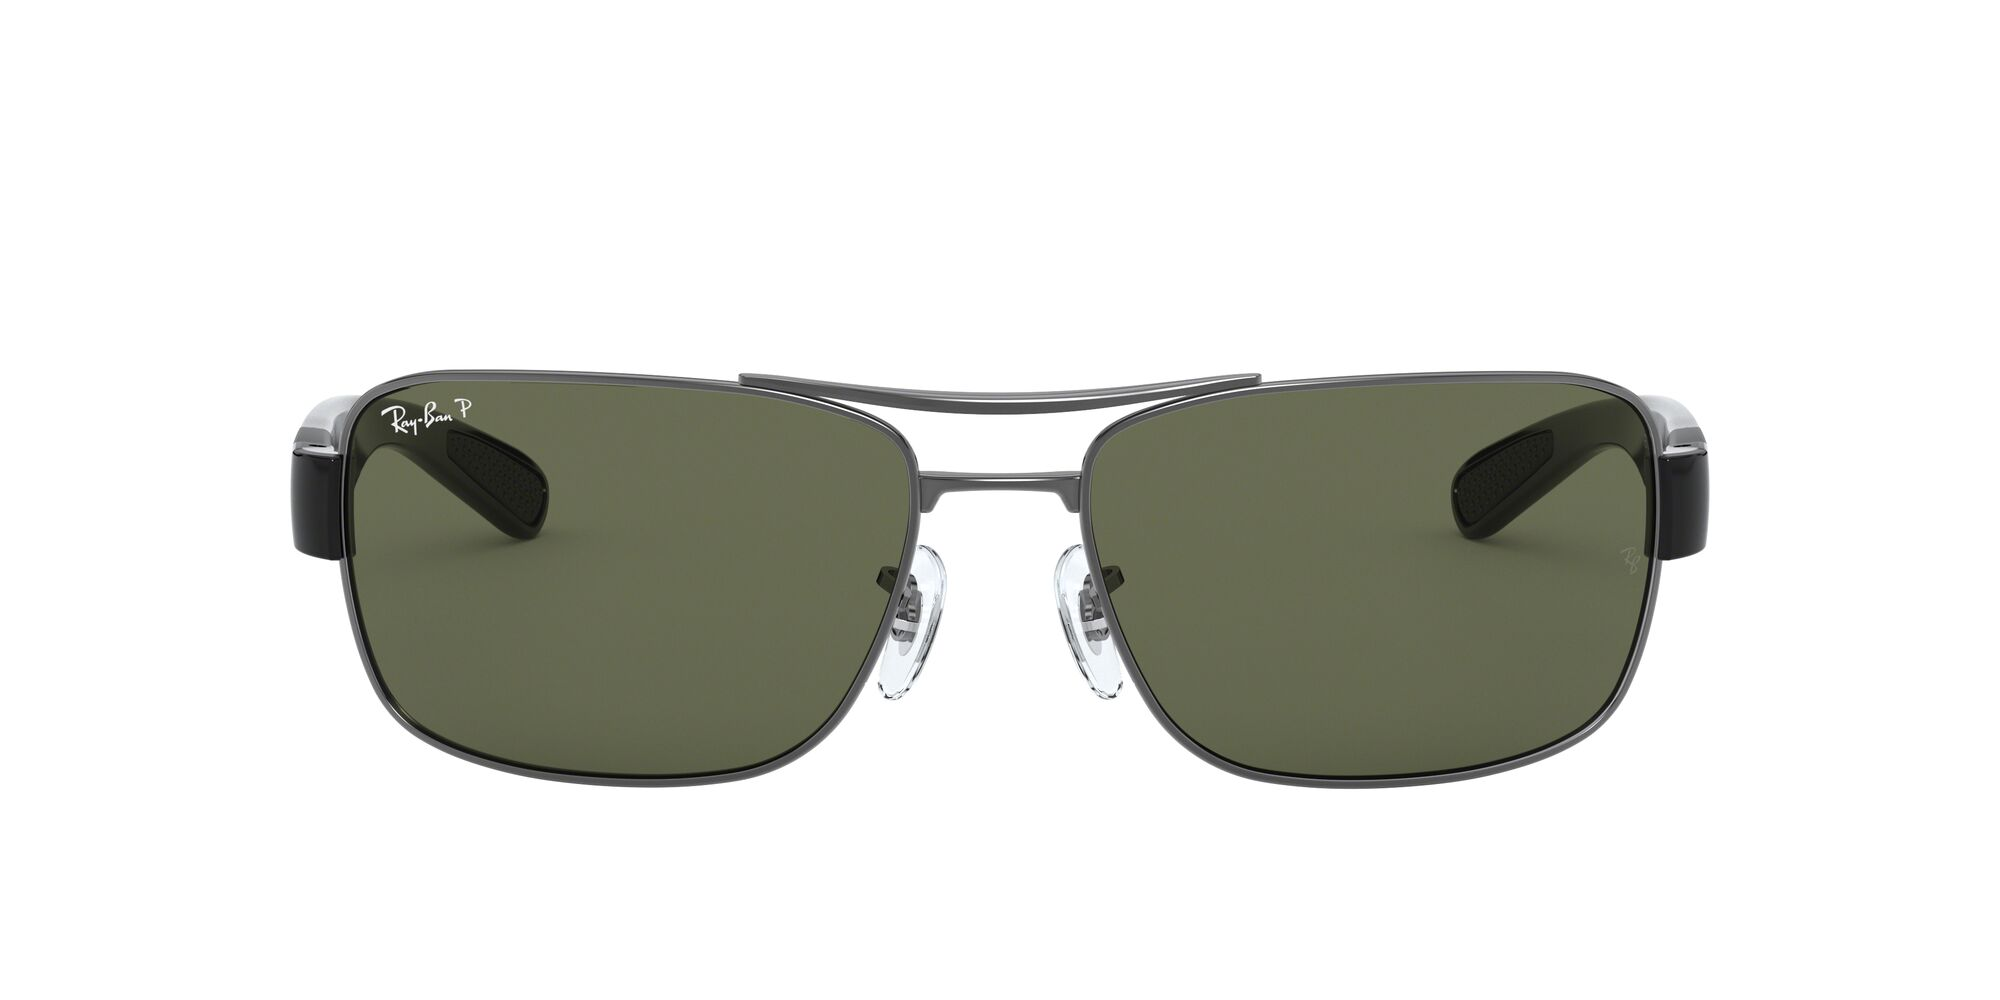 Front Ray-Ban Ray-Ban RB3522 004/9A 61/17 Grijs/Groen